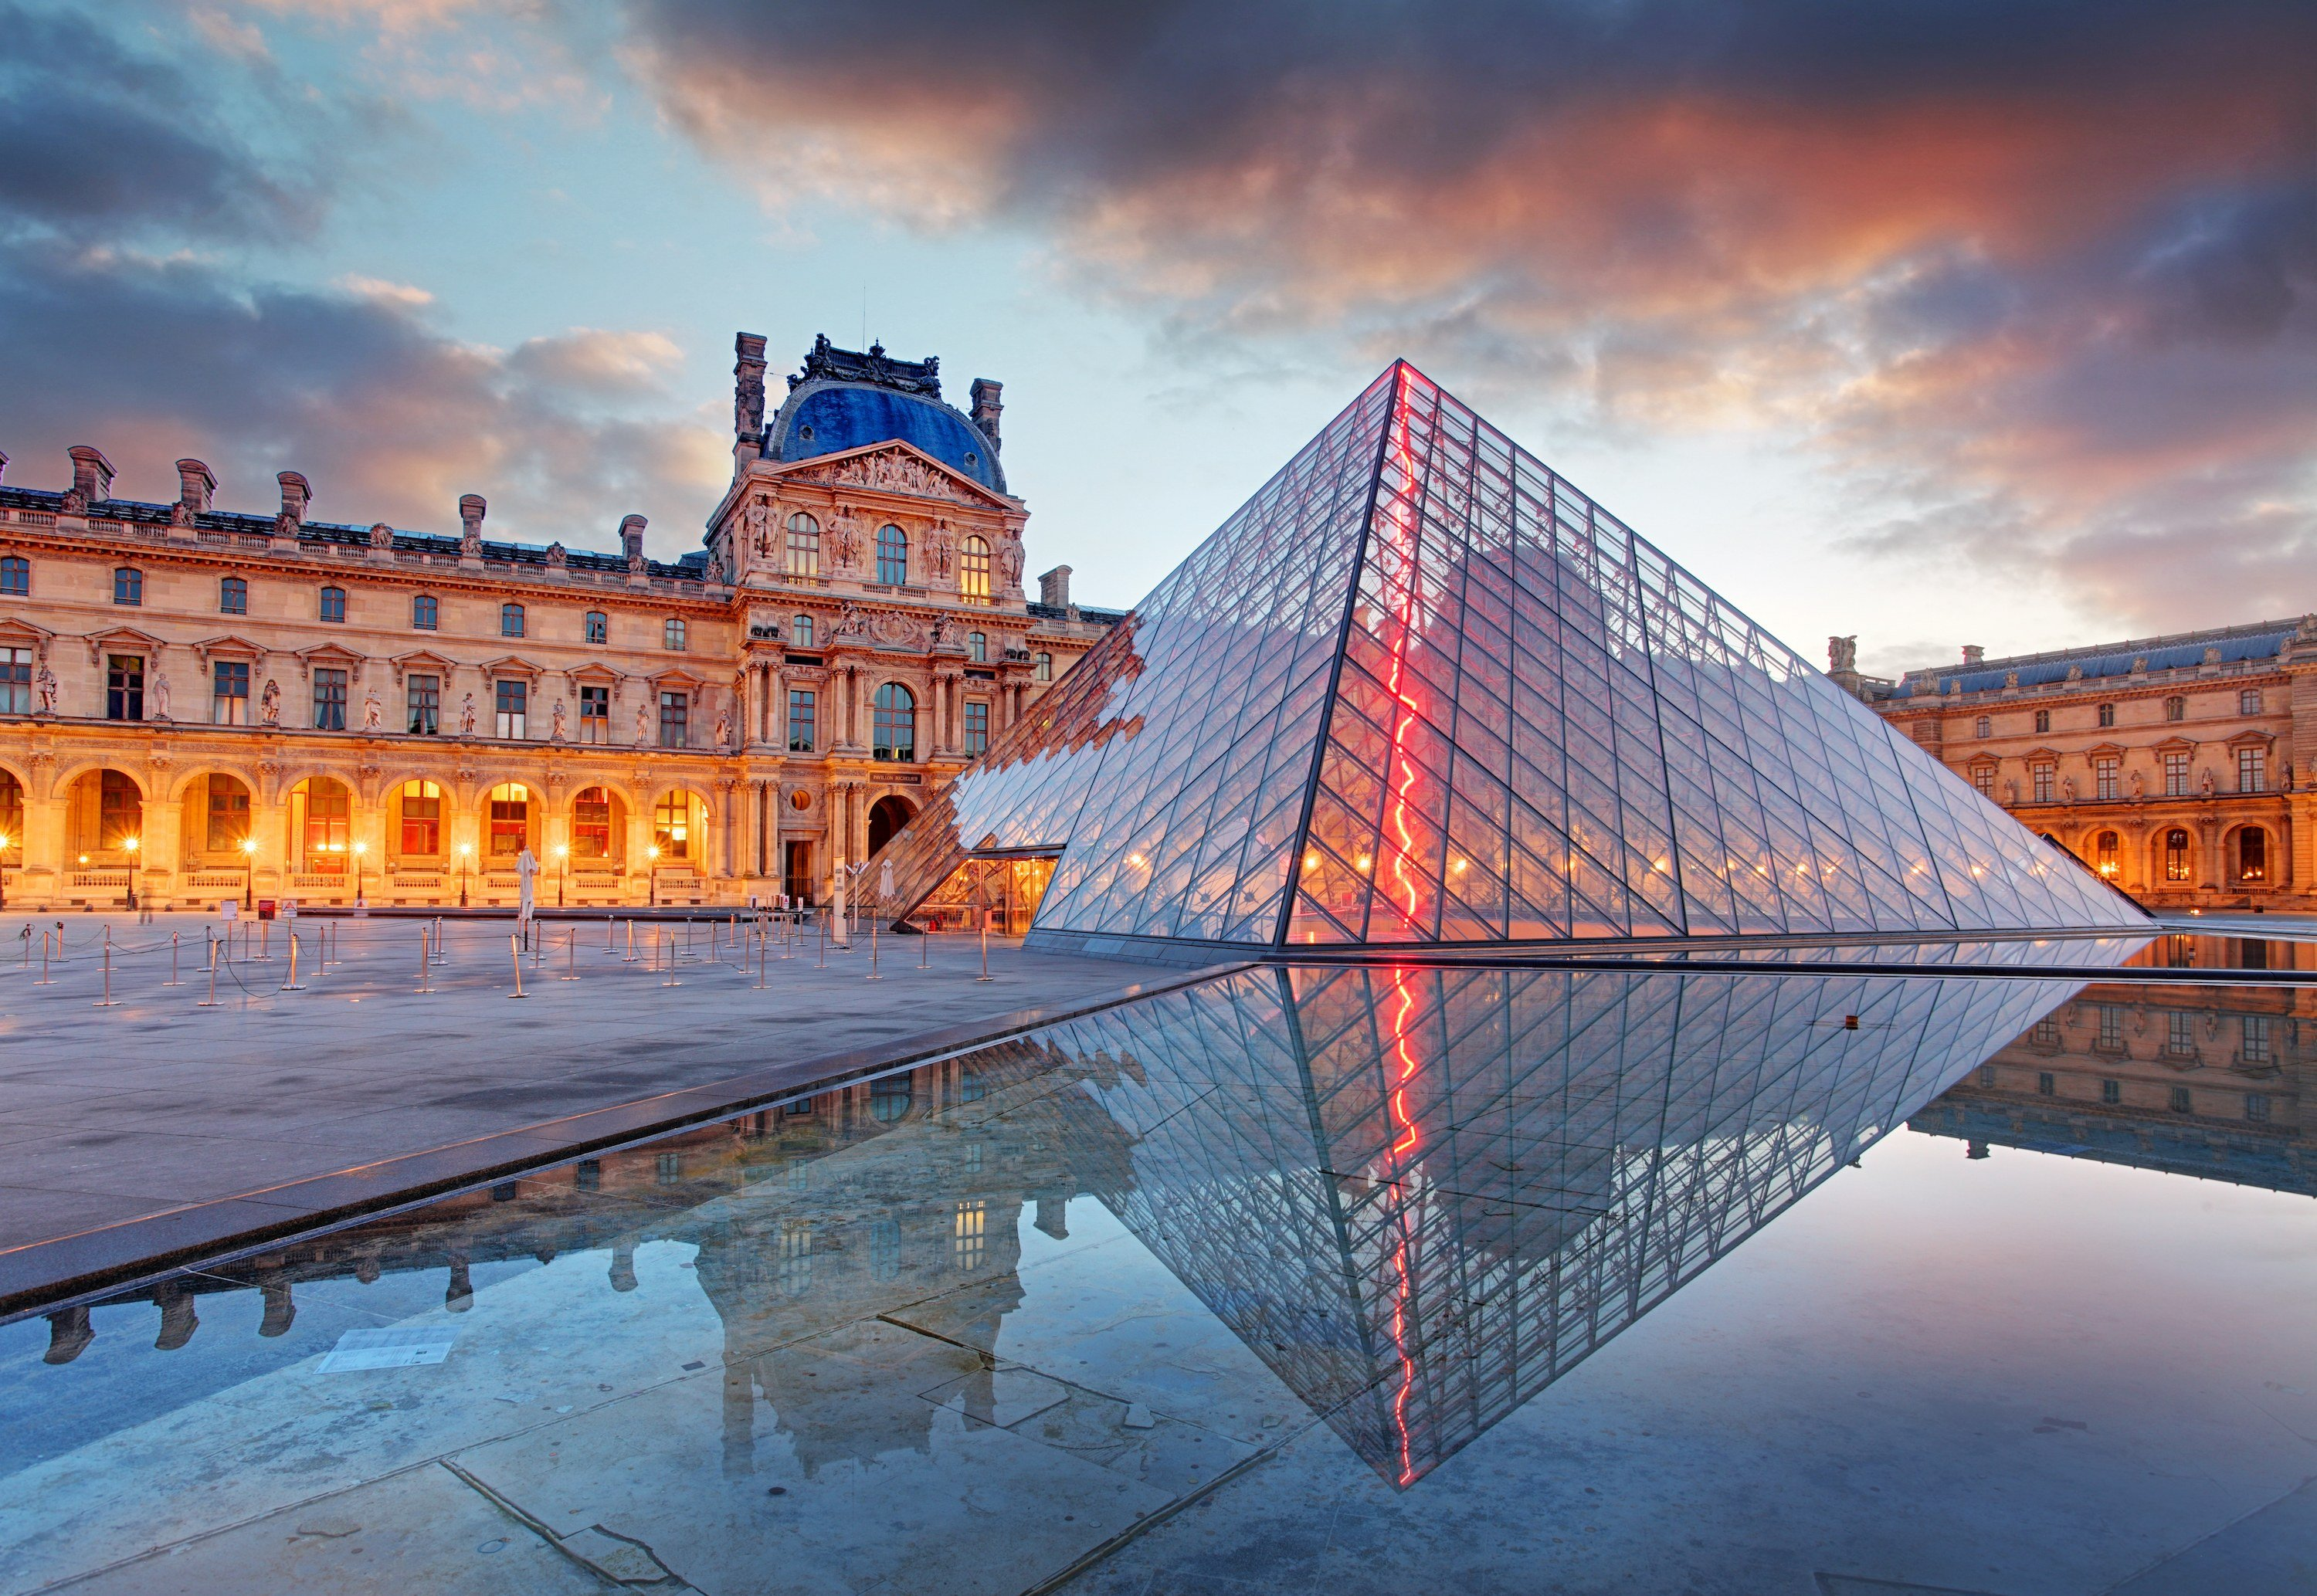 https://0201.nccdn.net/1_2/000/000/126/3ea/Secrets-of-Louvre-1.jpg